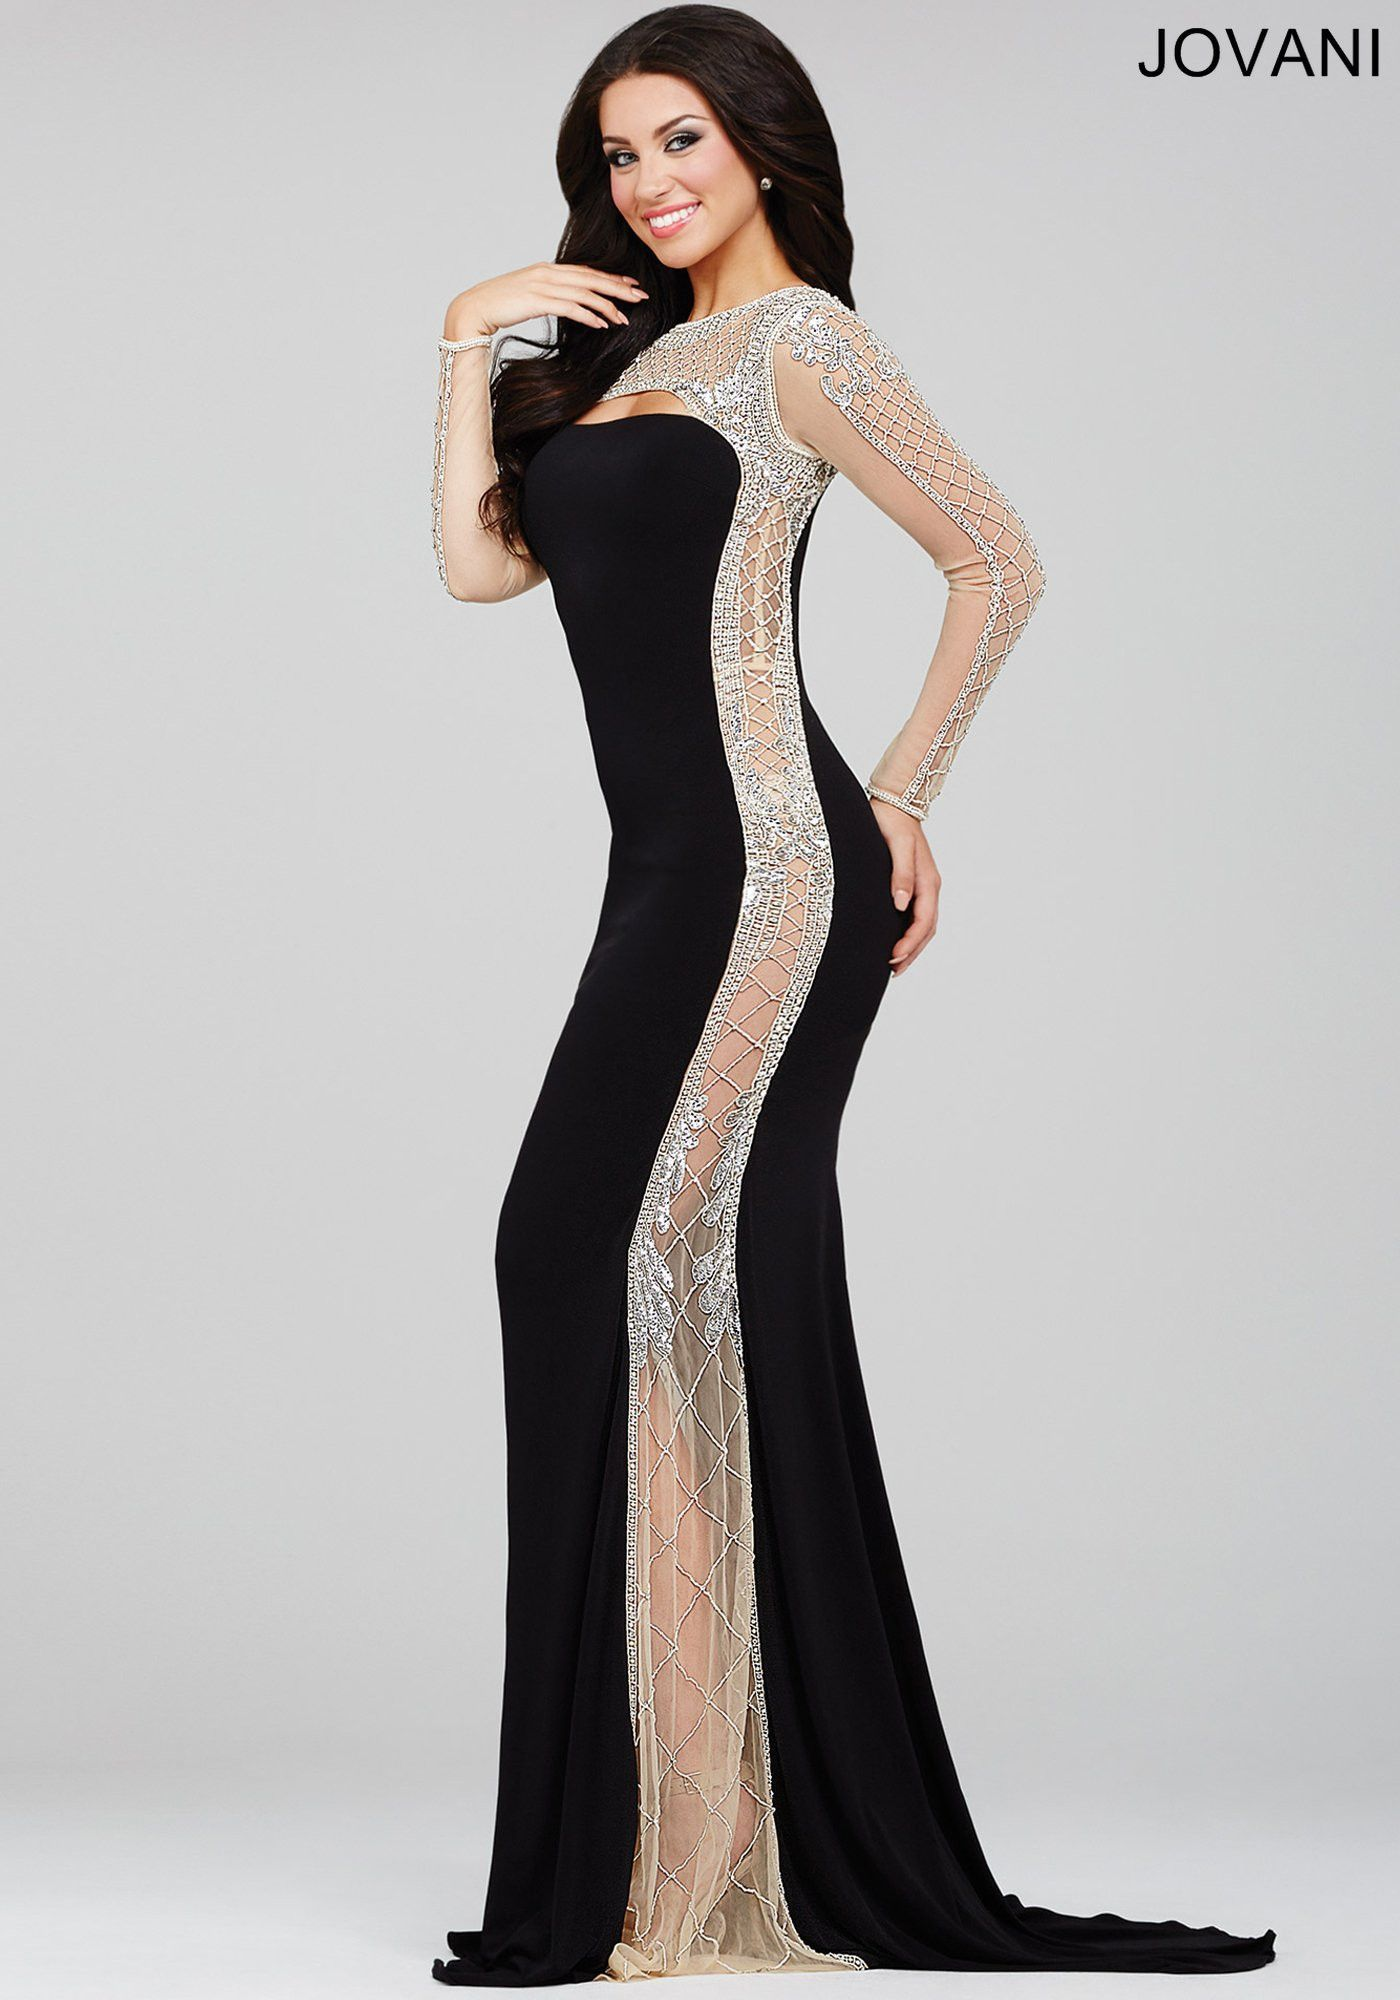 12d9936a602 Jovani 22954 In Stock Black Nude Size 6 Long Sleeve Evening Gown Pageant Prom  Dress